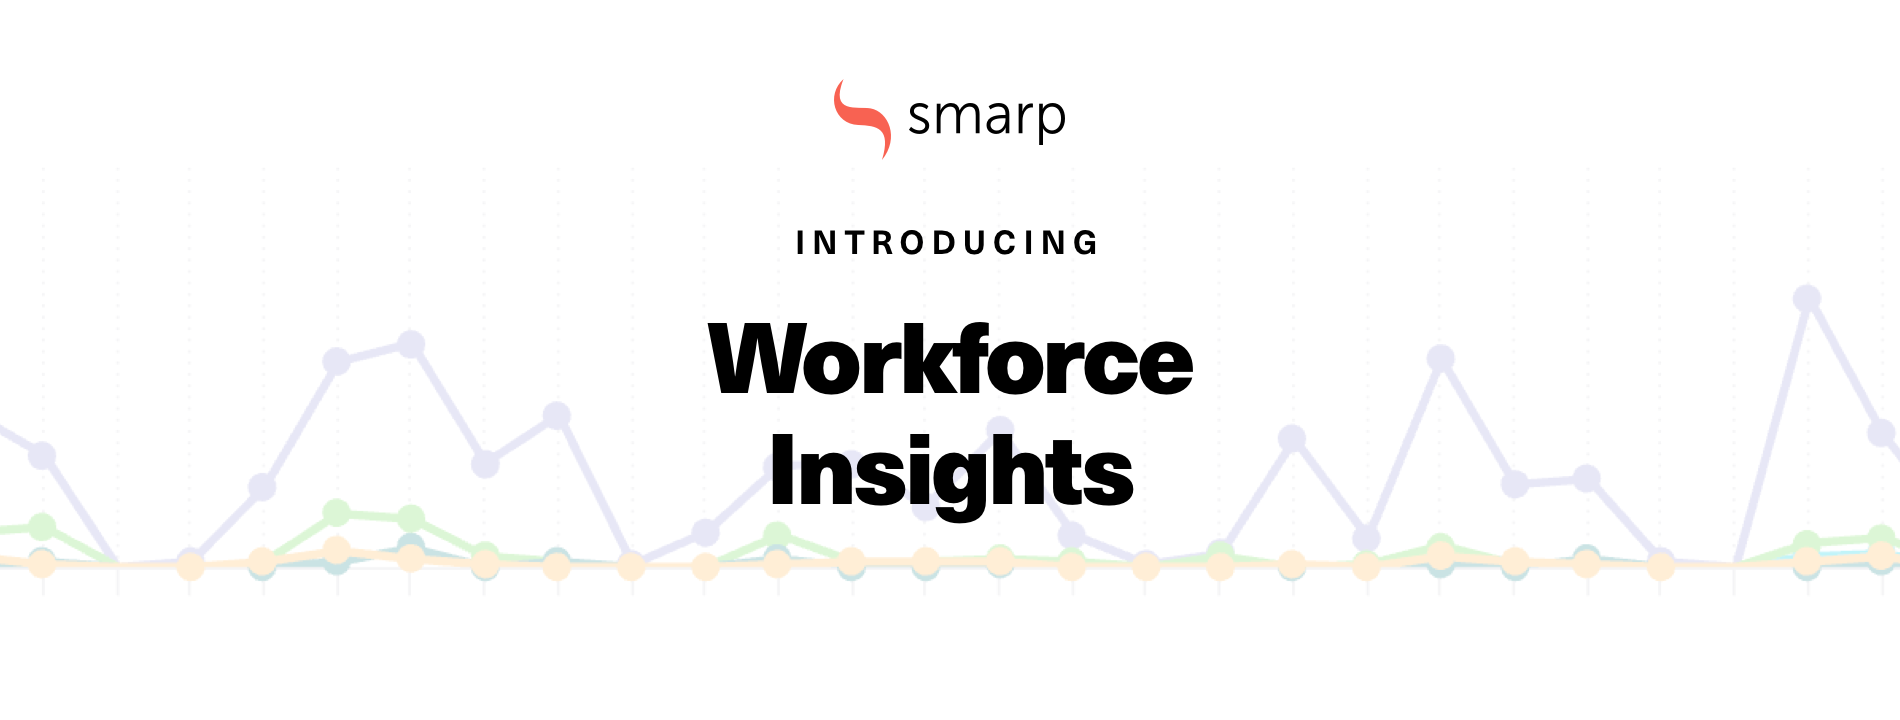 Smarp Launches AI-Powered Analytics Suite To Enable Enterprise Communicators To Make Data-Driven Decisions